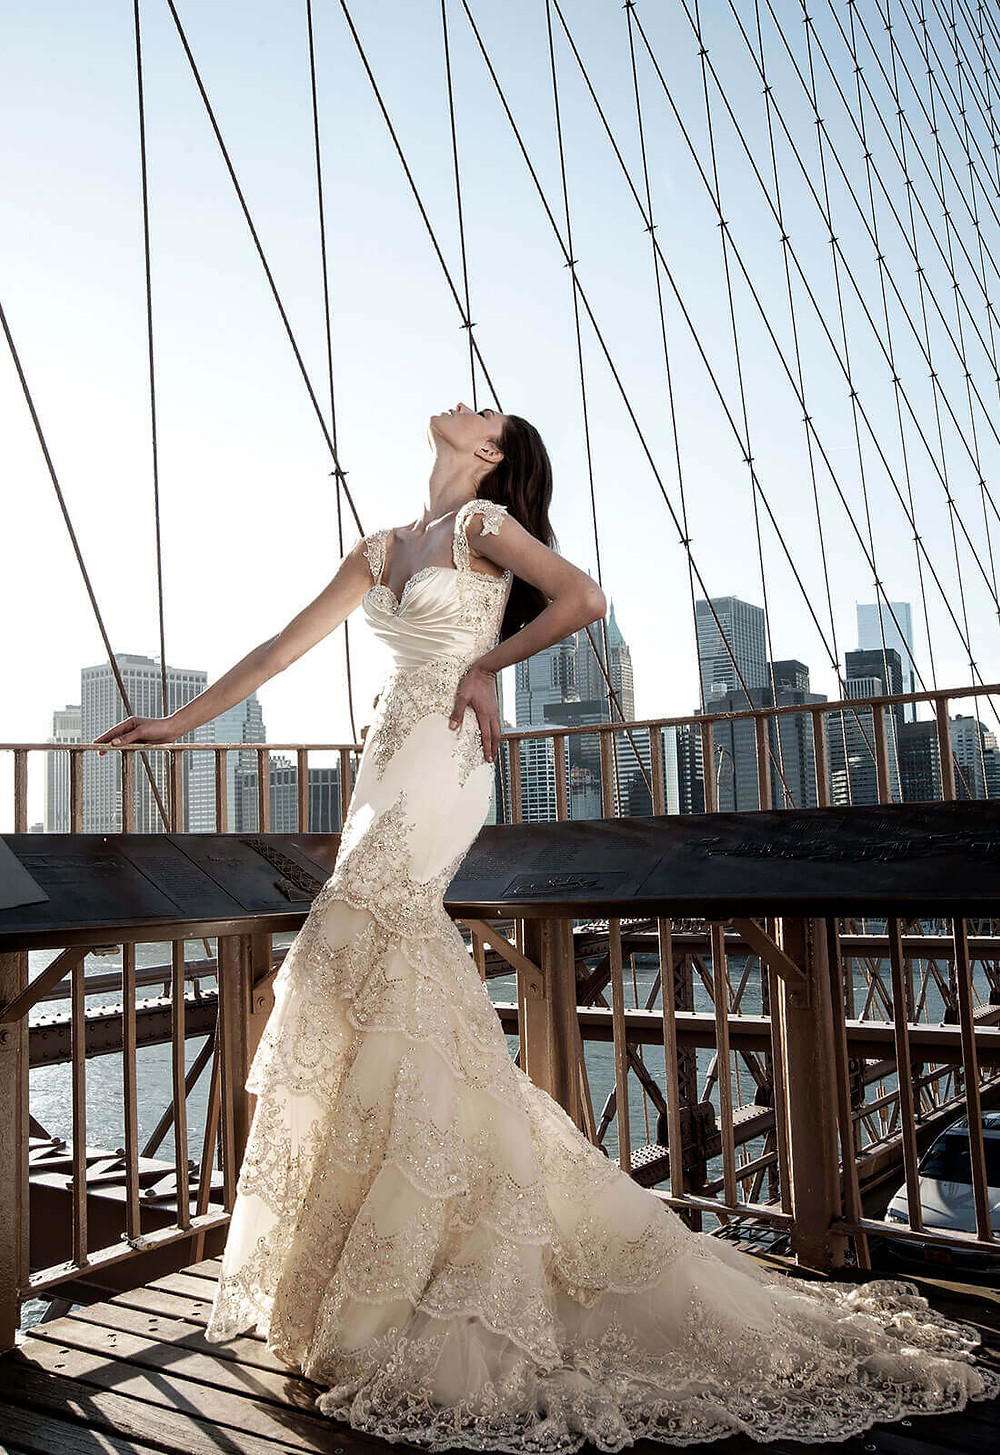 A Pnina Tornai satin, champagne mermaid wedding dress with lace and straps